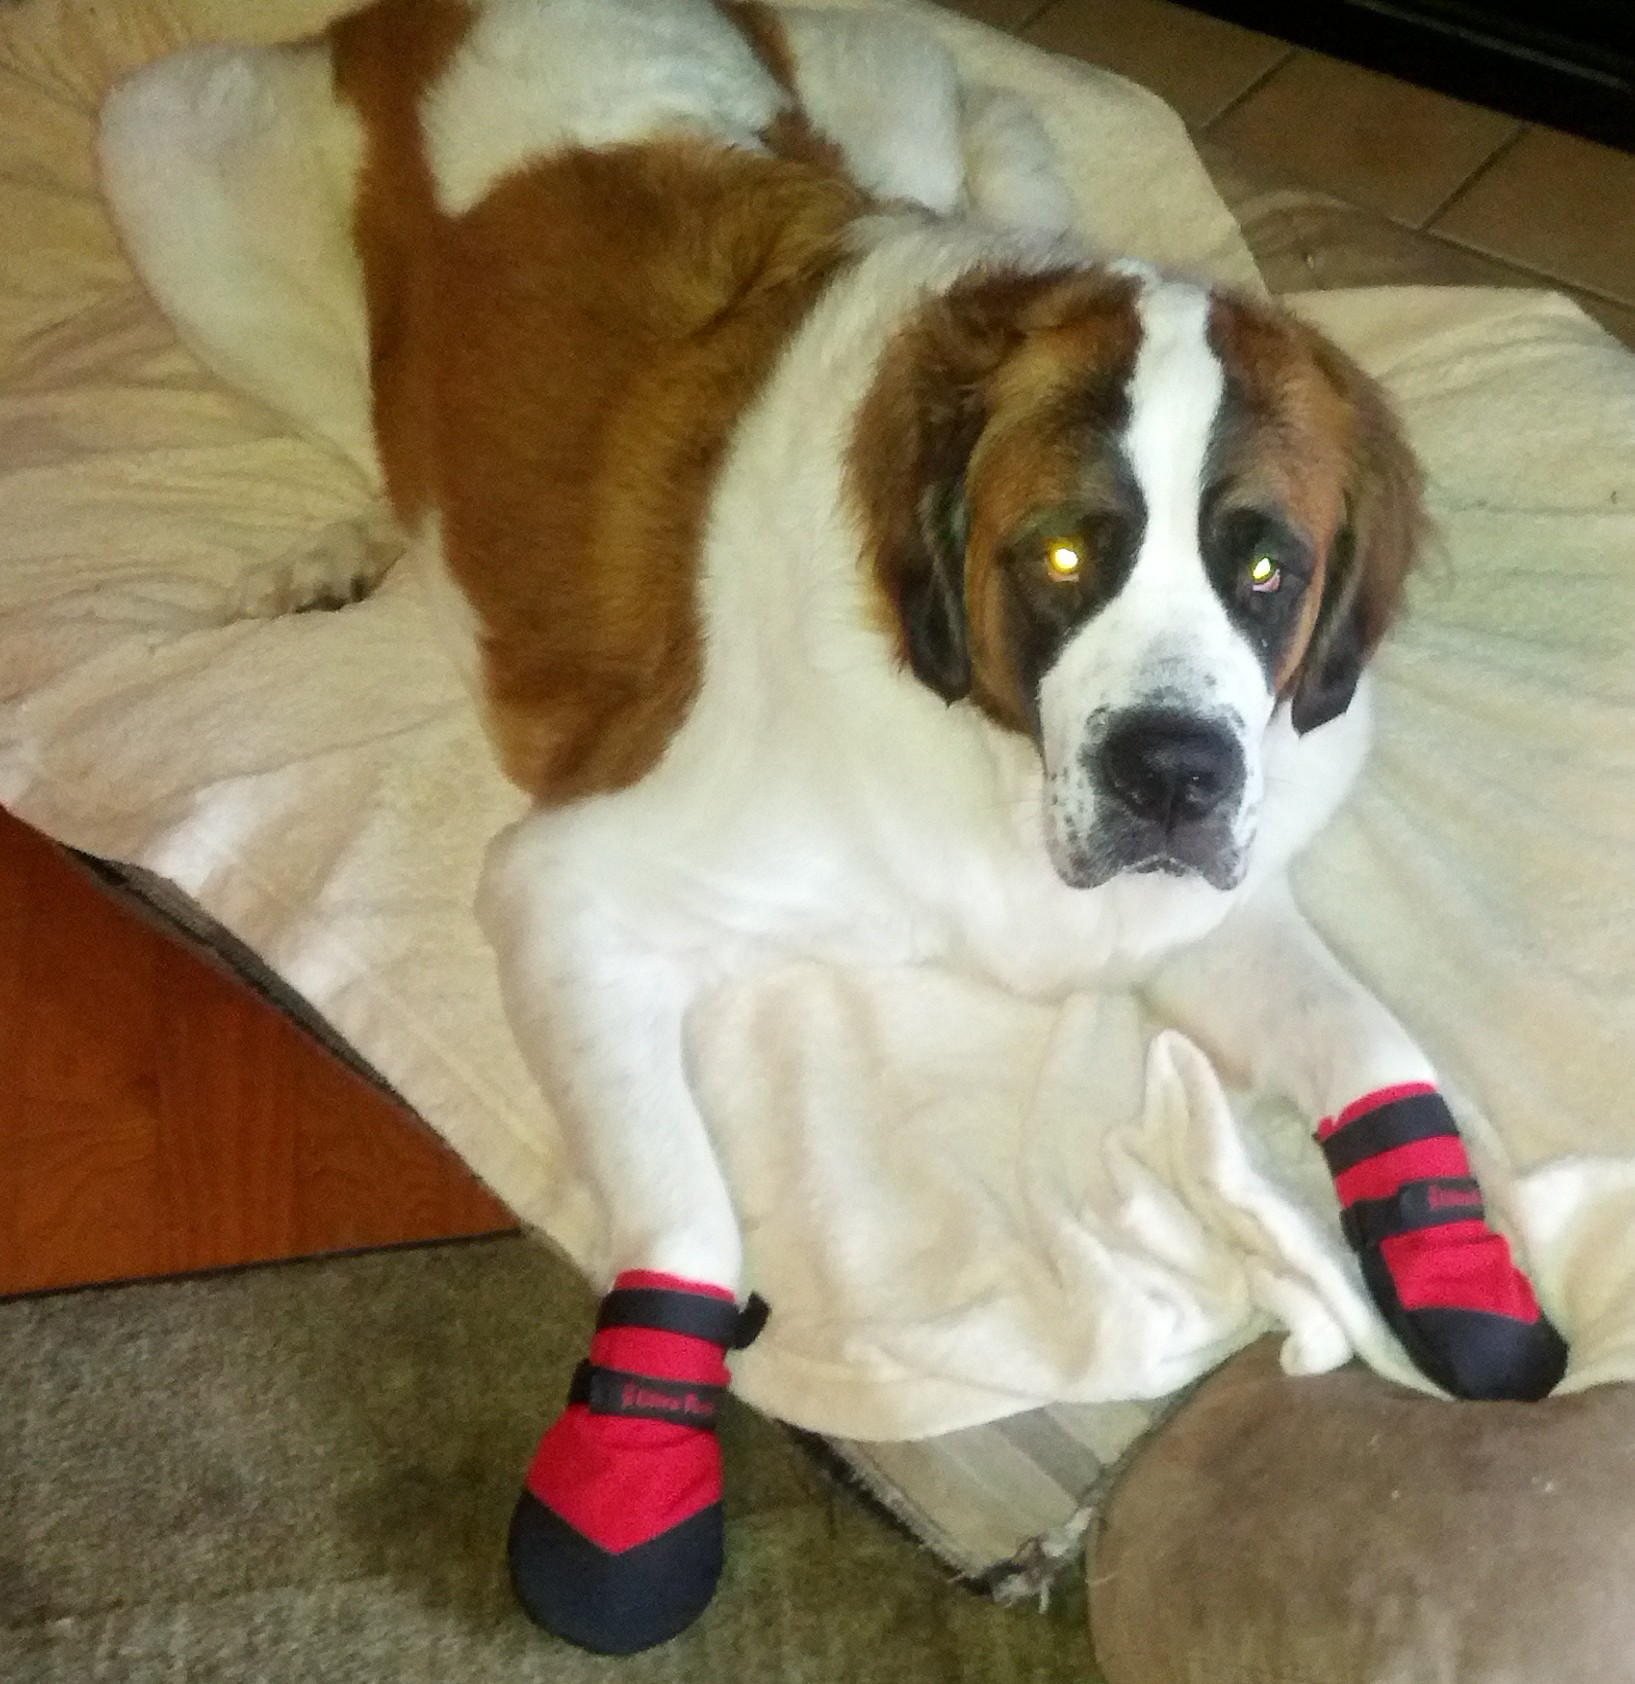 St. Bernard wearing red dog booties to prevent allergies